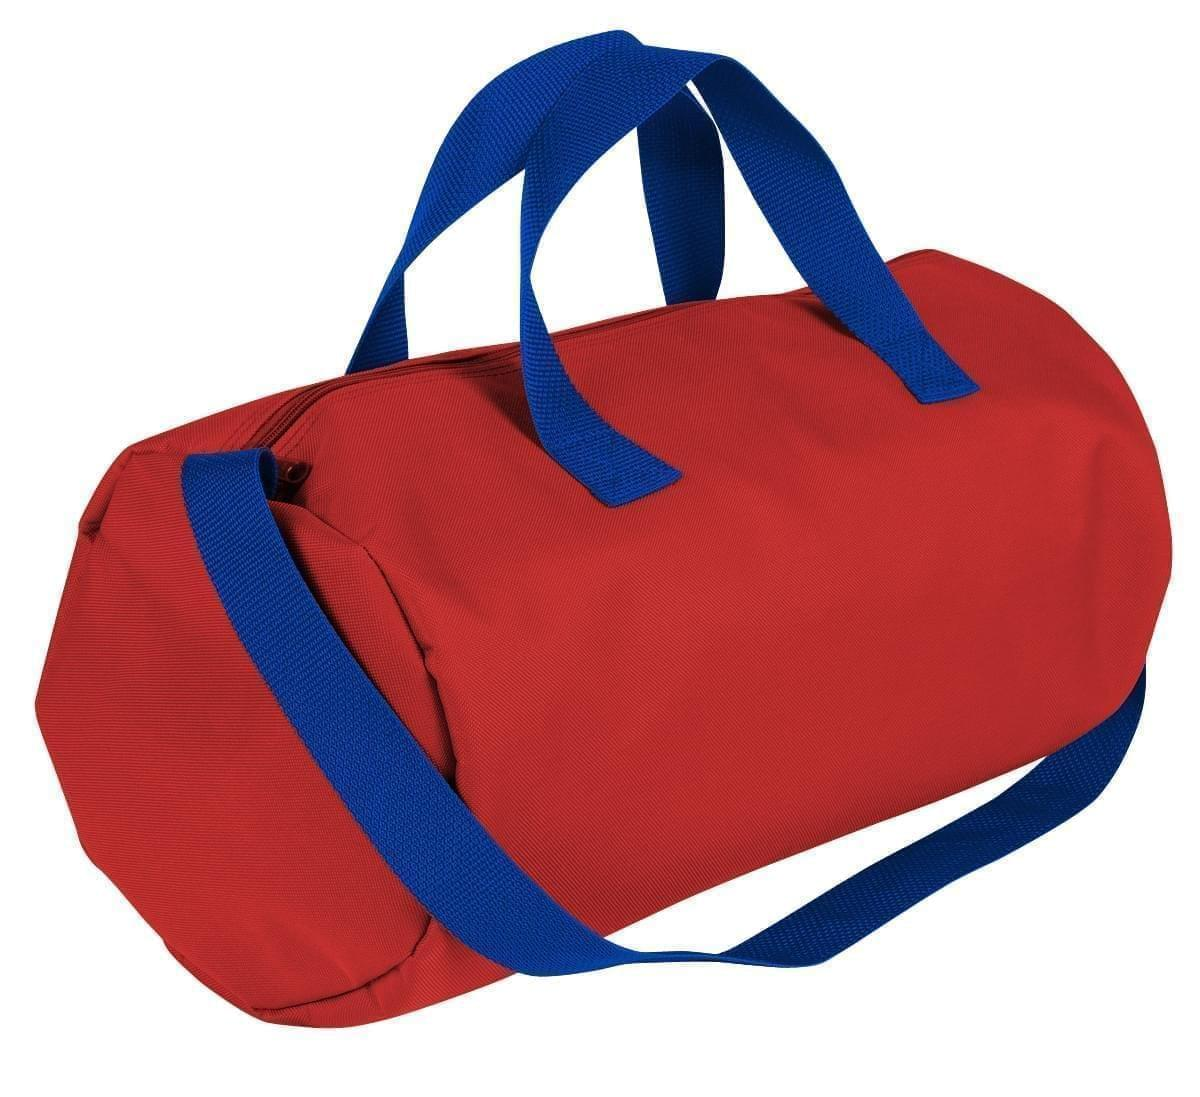 USA Made Nylon Poly Gym Roll Bags, Red-Royal Blue, ROCX31AAZ3